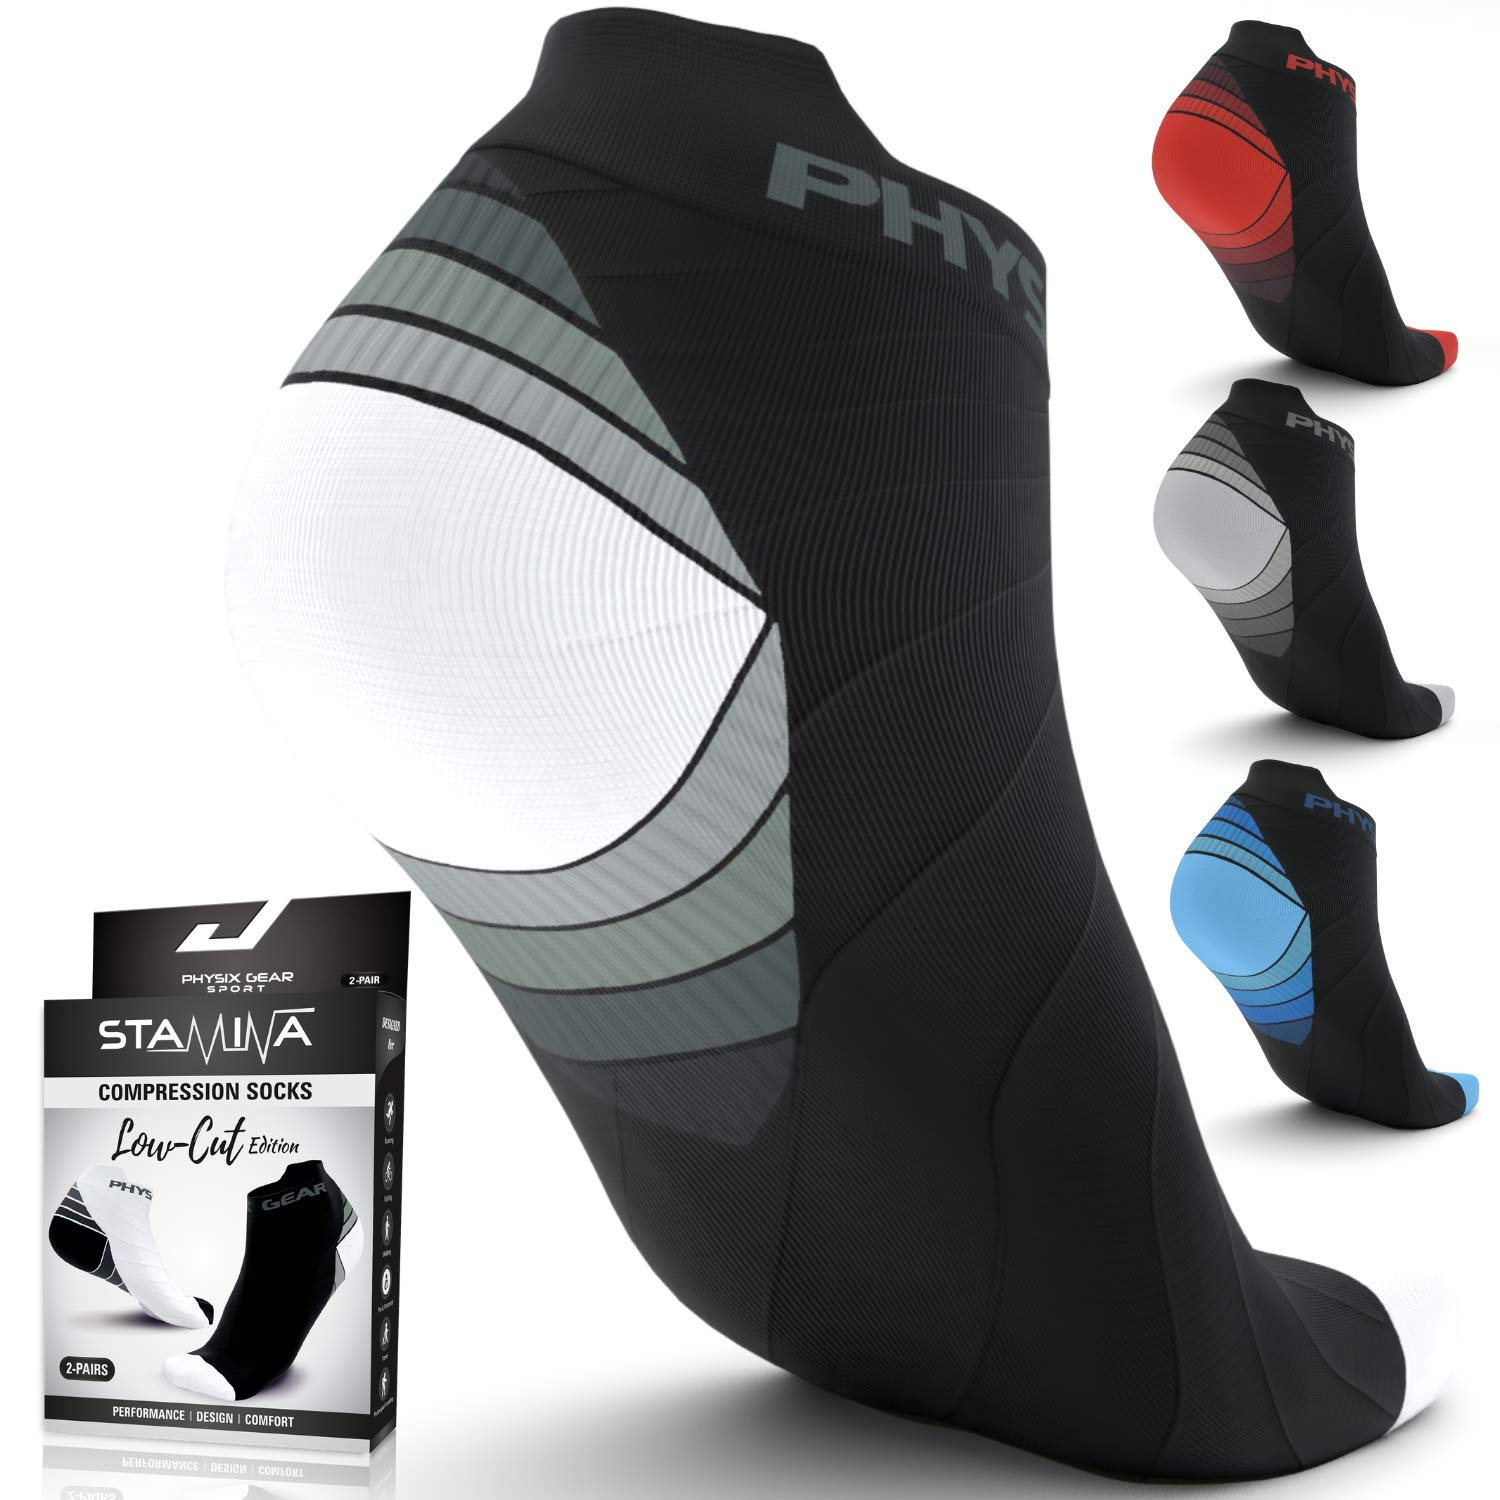 Physix Gear Compression Running Socks Men Women - Best Low Cut No Show Athletic Socks for Stamina Circulation & Recovery - Ultra Durable Ankle Socks Designed for Plantar Fasciitis, Cycling & Running product image